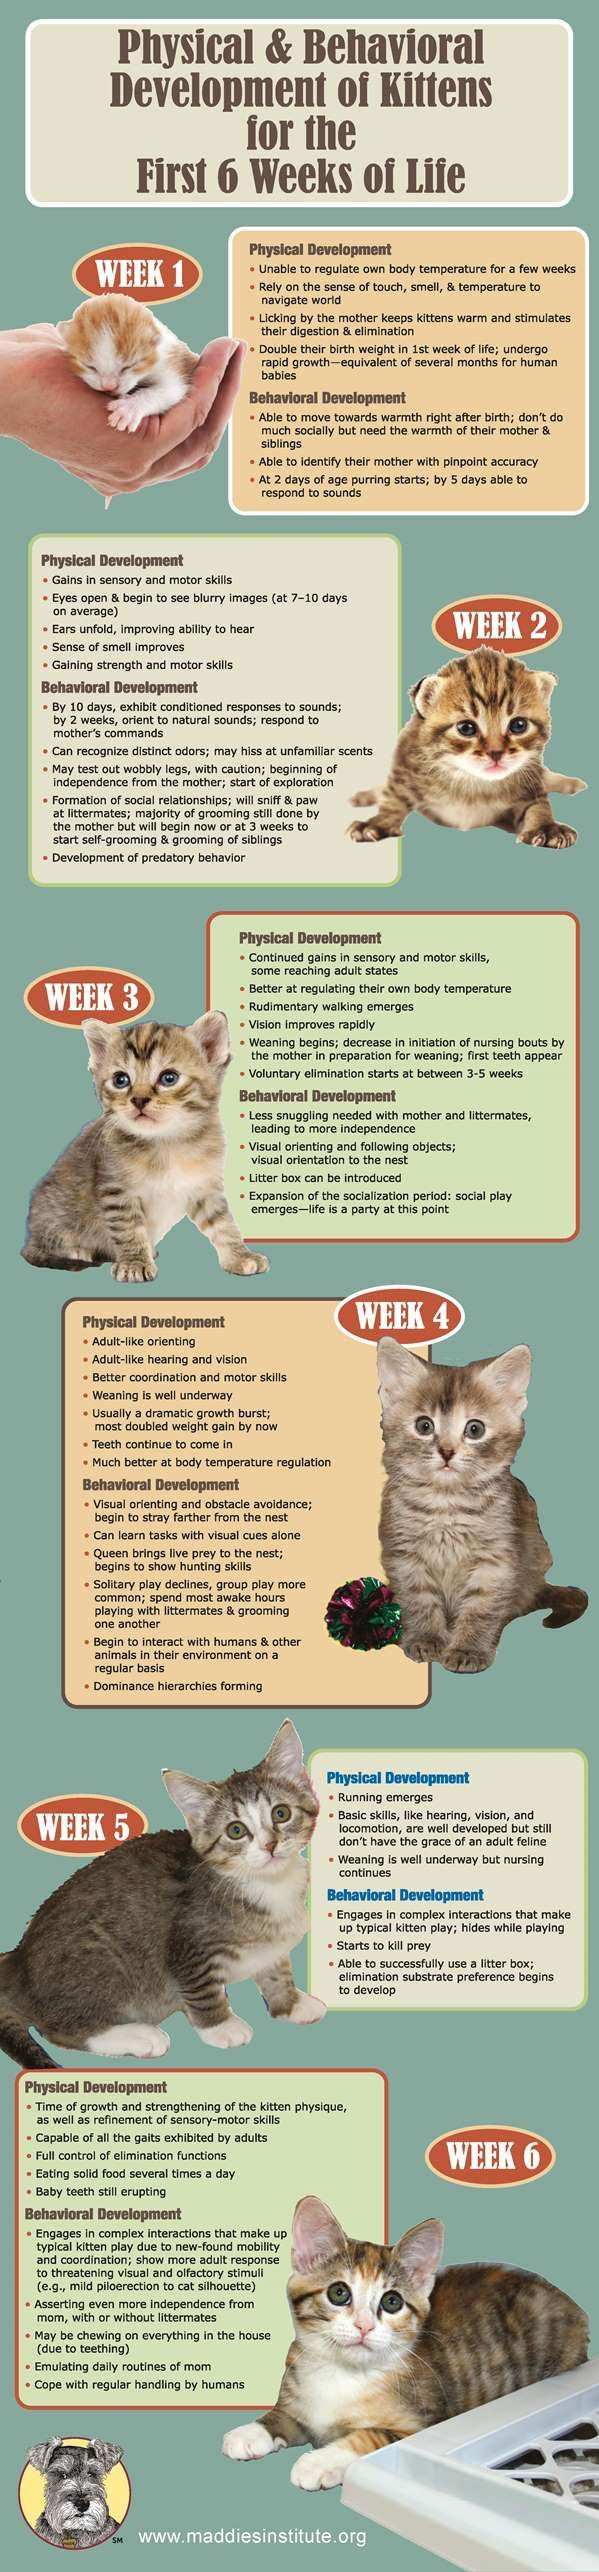 Physical And Behavioral Development Of Kittens Cat Care Kittens Cats And Kittens